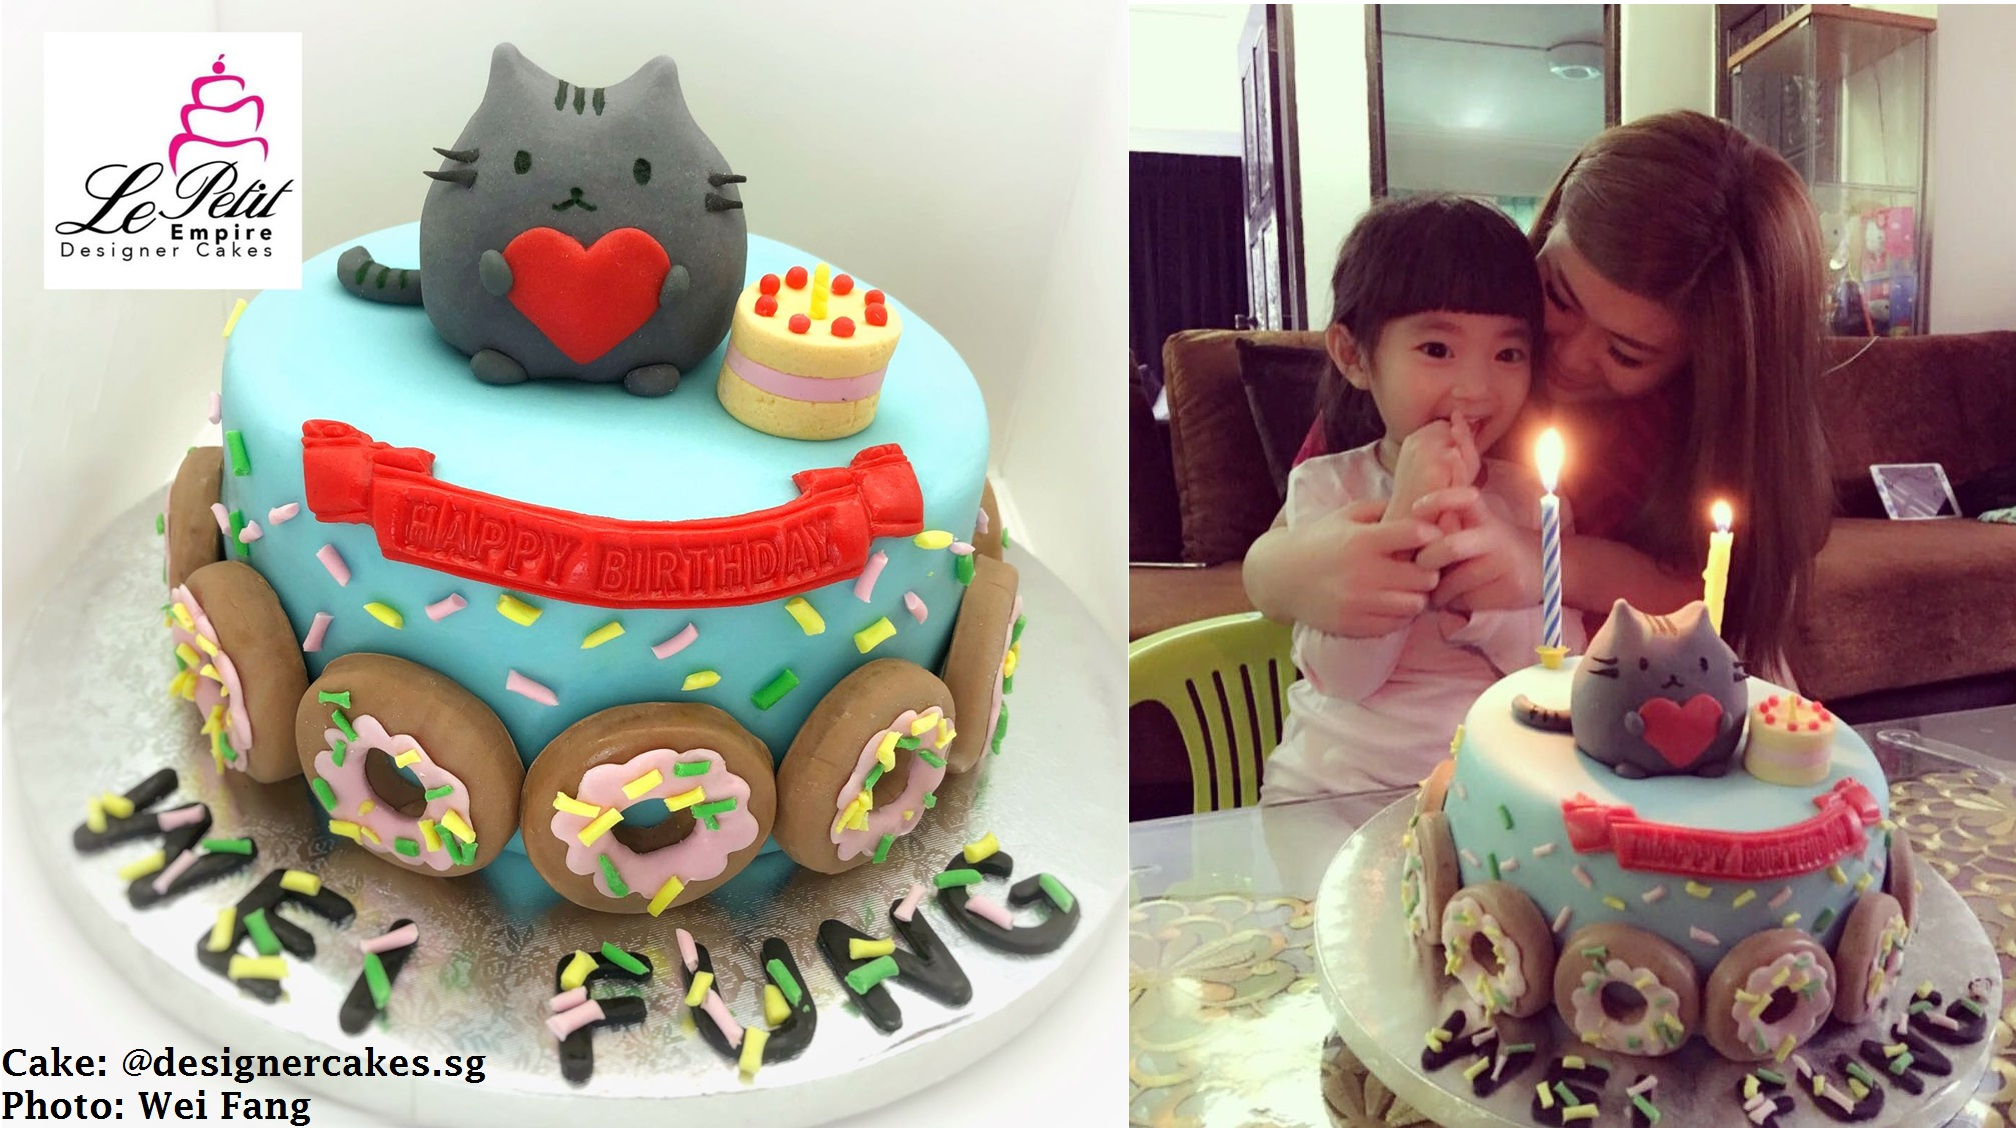 Fondant Cat Cake with Mini Cake and surrounded with Donuts Le